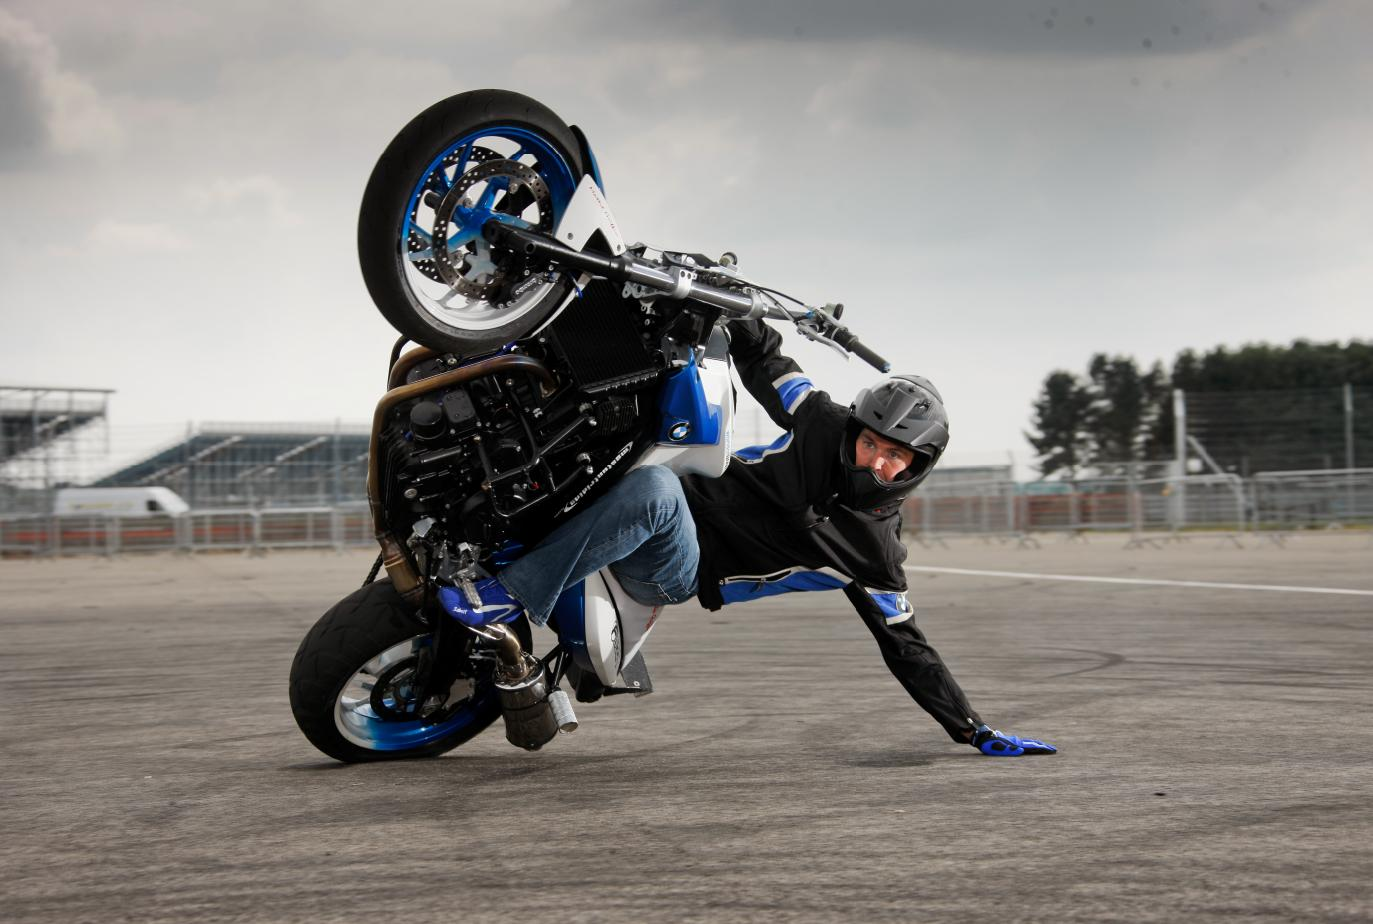 download hd bike stunt wallpapers gallery